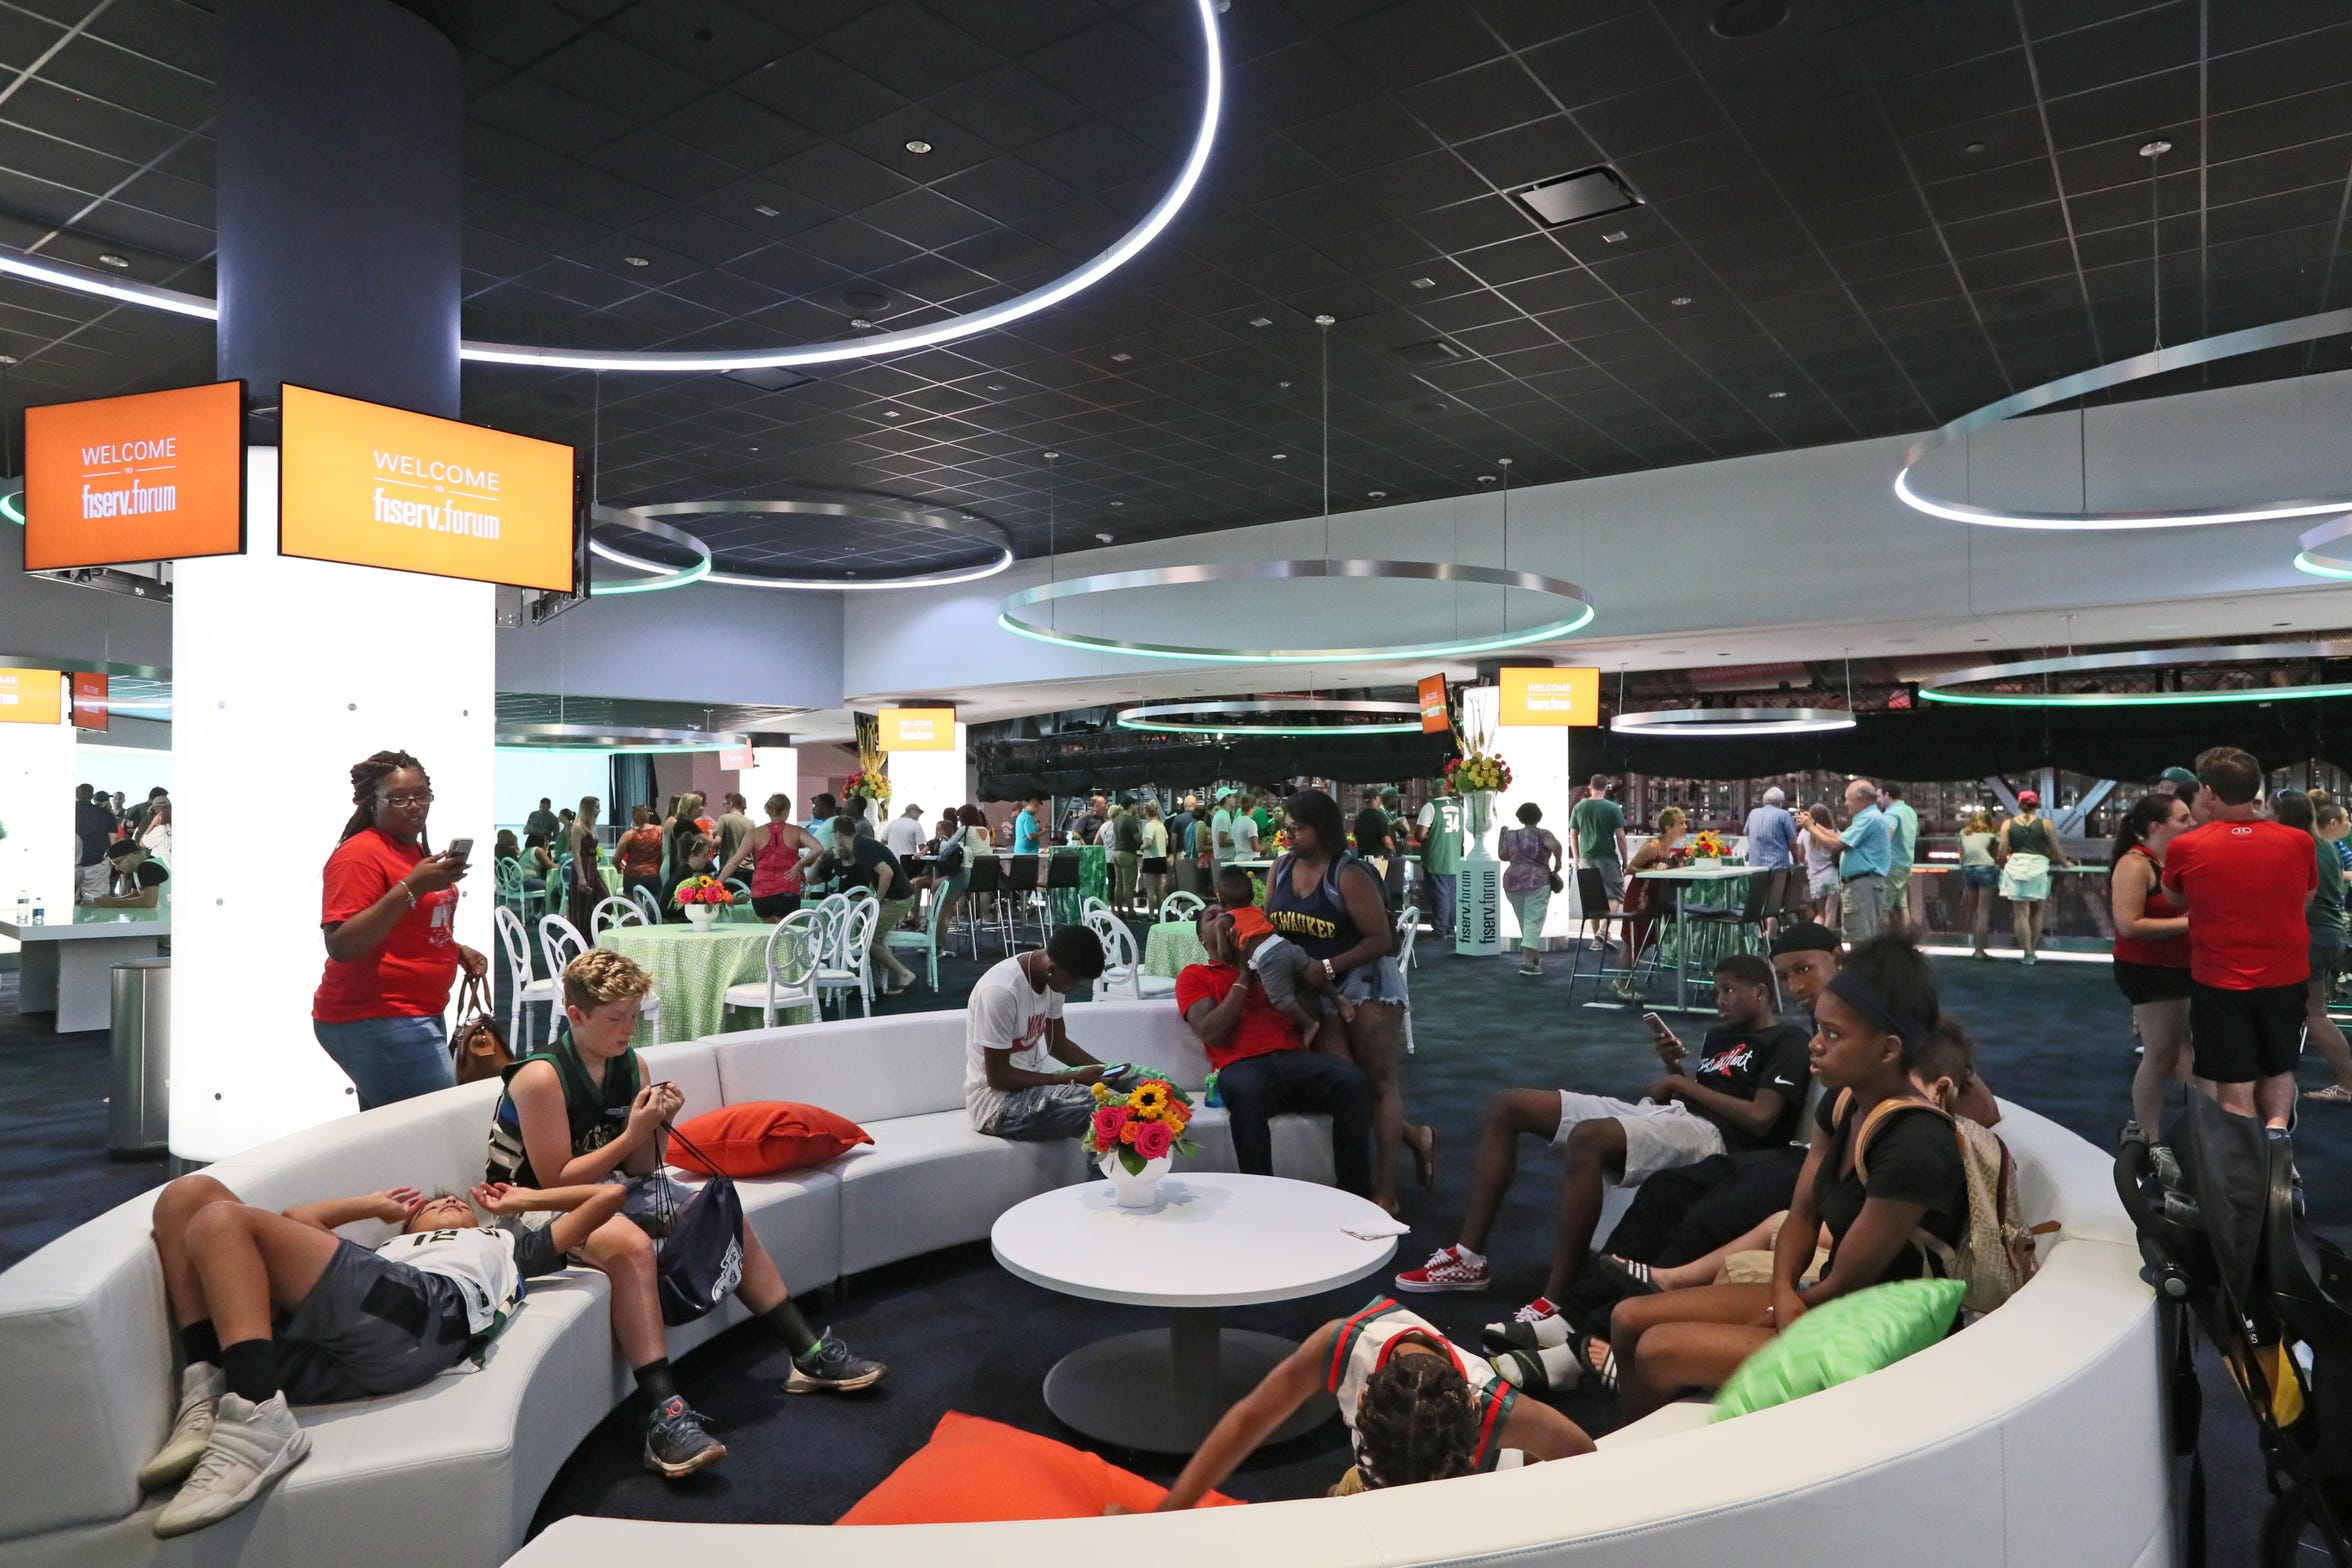 During the grand opening of Fiserv Forum on Aug. 26, visitors explore the Panorama Club level.